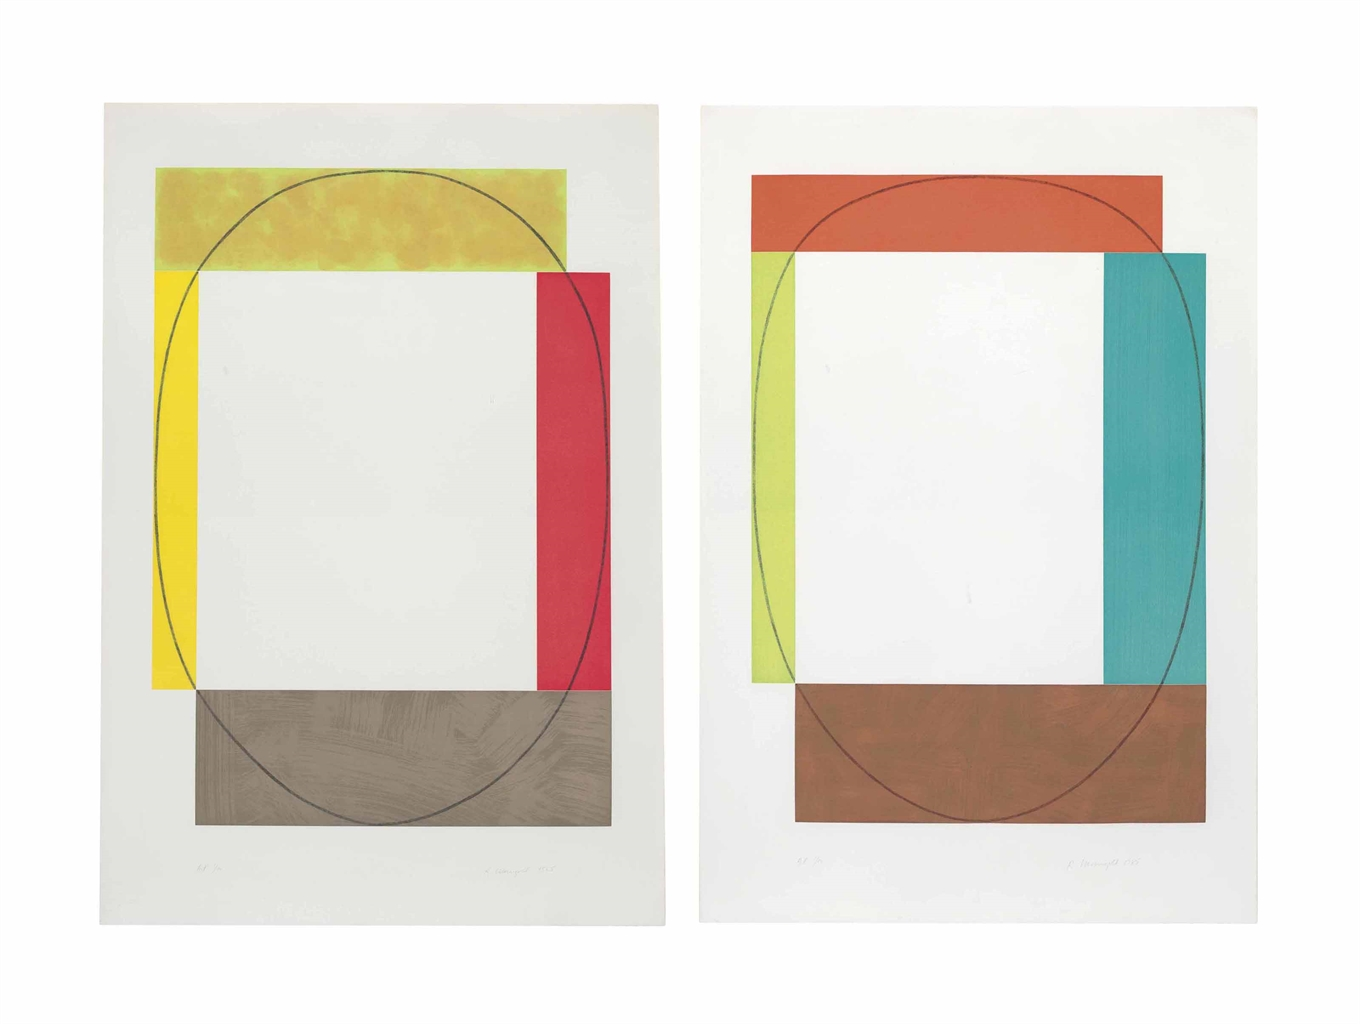 Robert Mangold-Two Aquatints (Frames)-1985